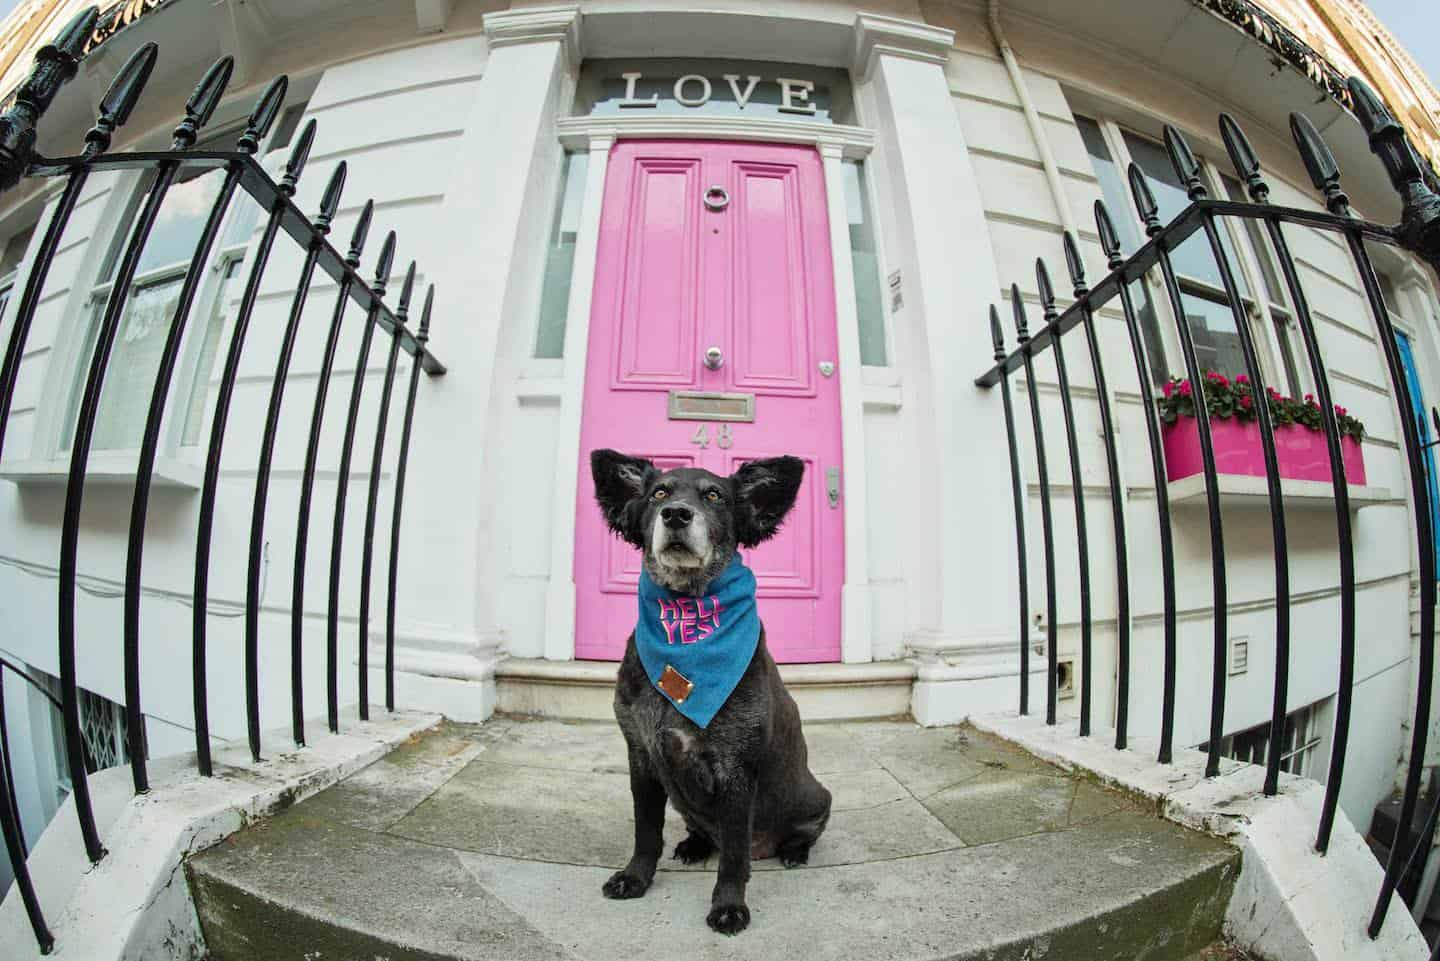 Dog-friendly London The Best Free Dog-friendly Things To Do - Chelsea 2